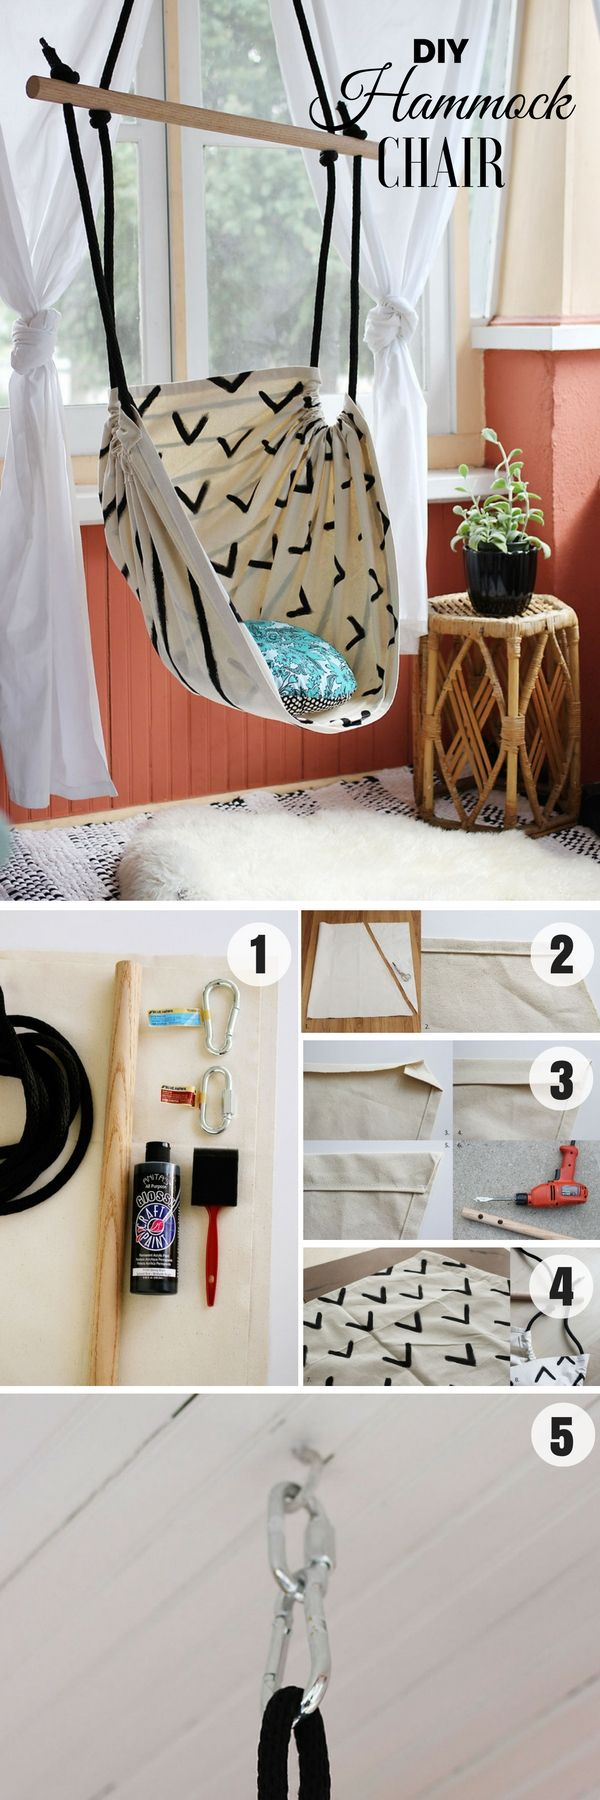 Best 25 Kids Rooms Decor Ideas Only On Pinterest Kids Bedroom - simple ideas to decorate home